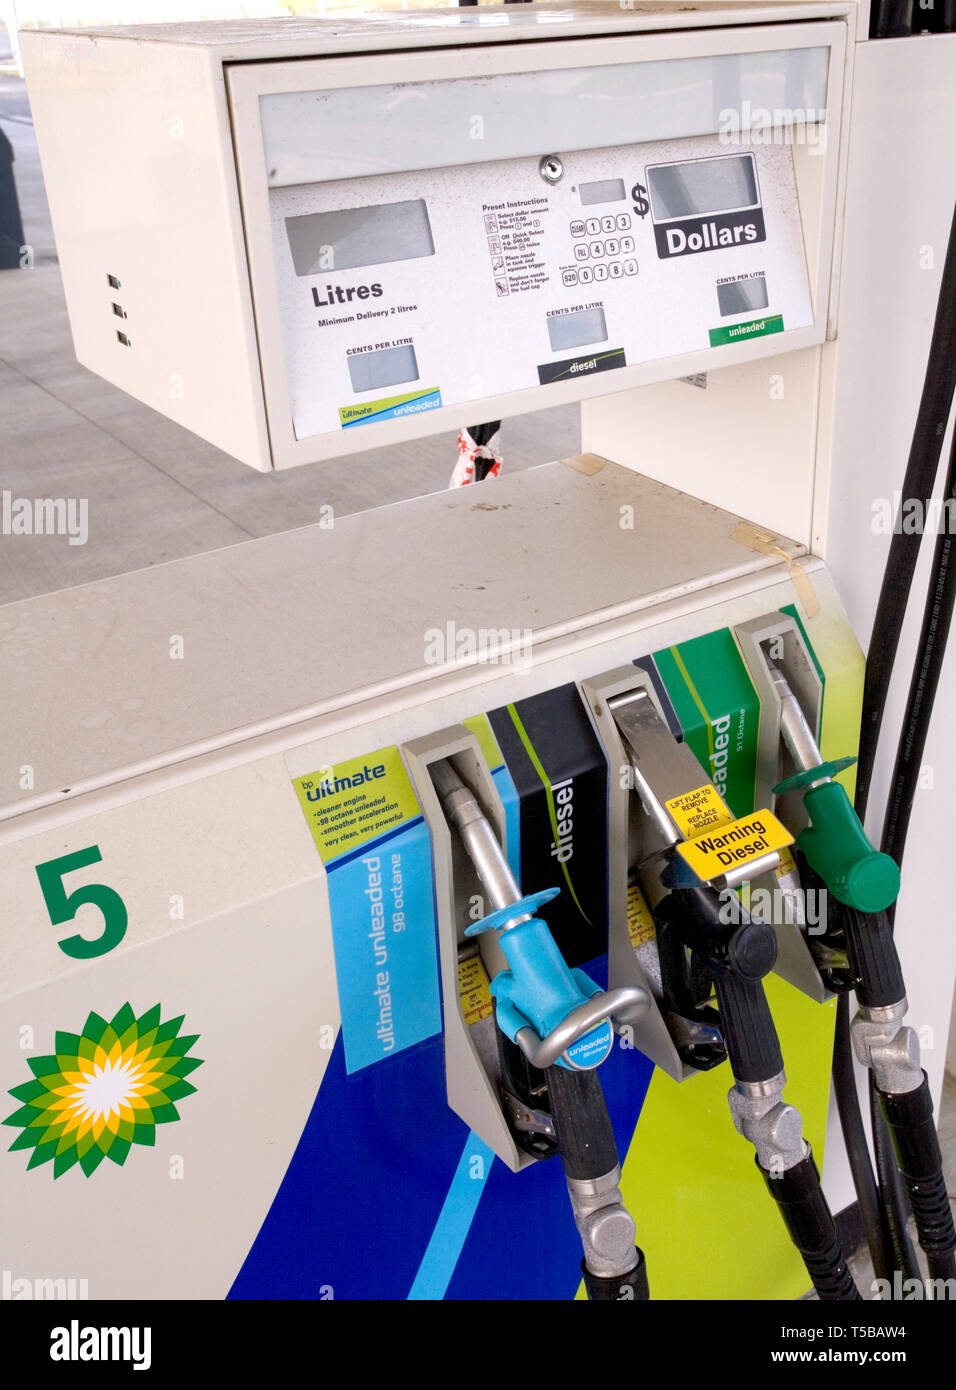 Fuel Station Pumps at BP Service Station on Apollo Drive, Rosedale, Auckland, New Zealand on Saturday 5 May 2007 Stock Photo